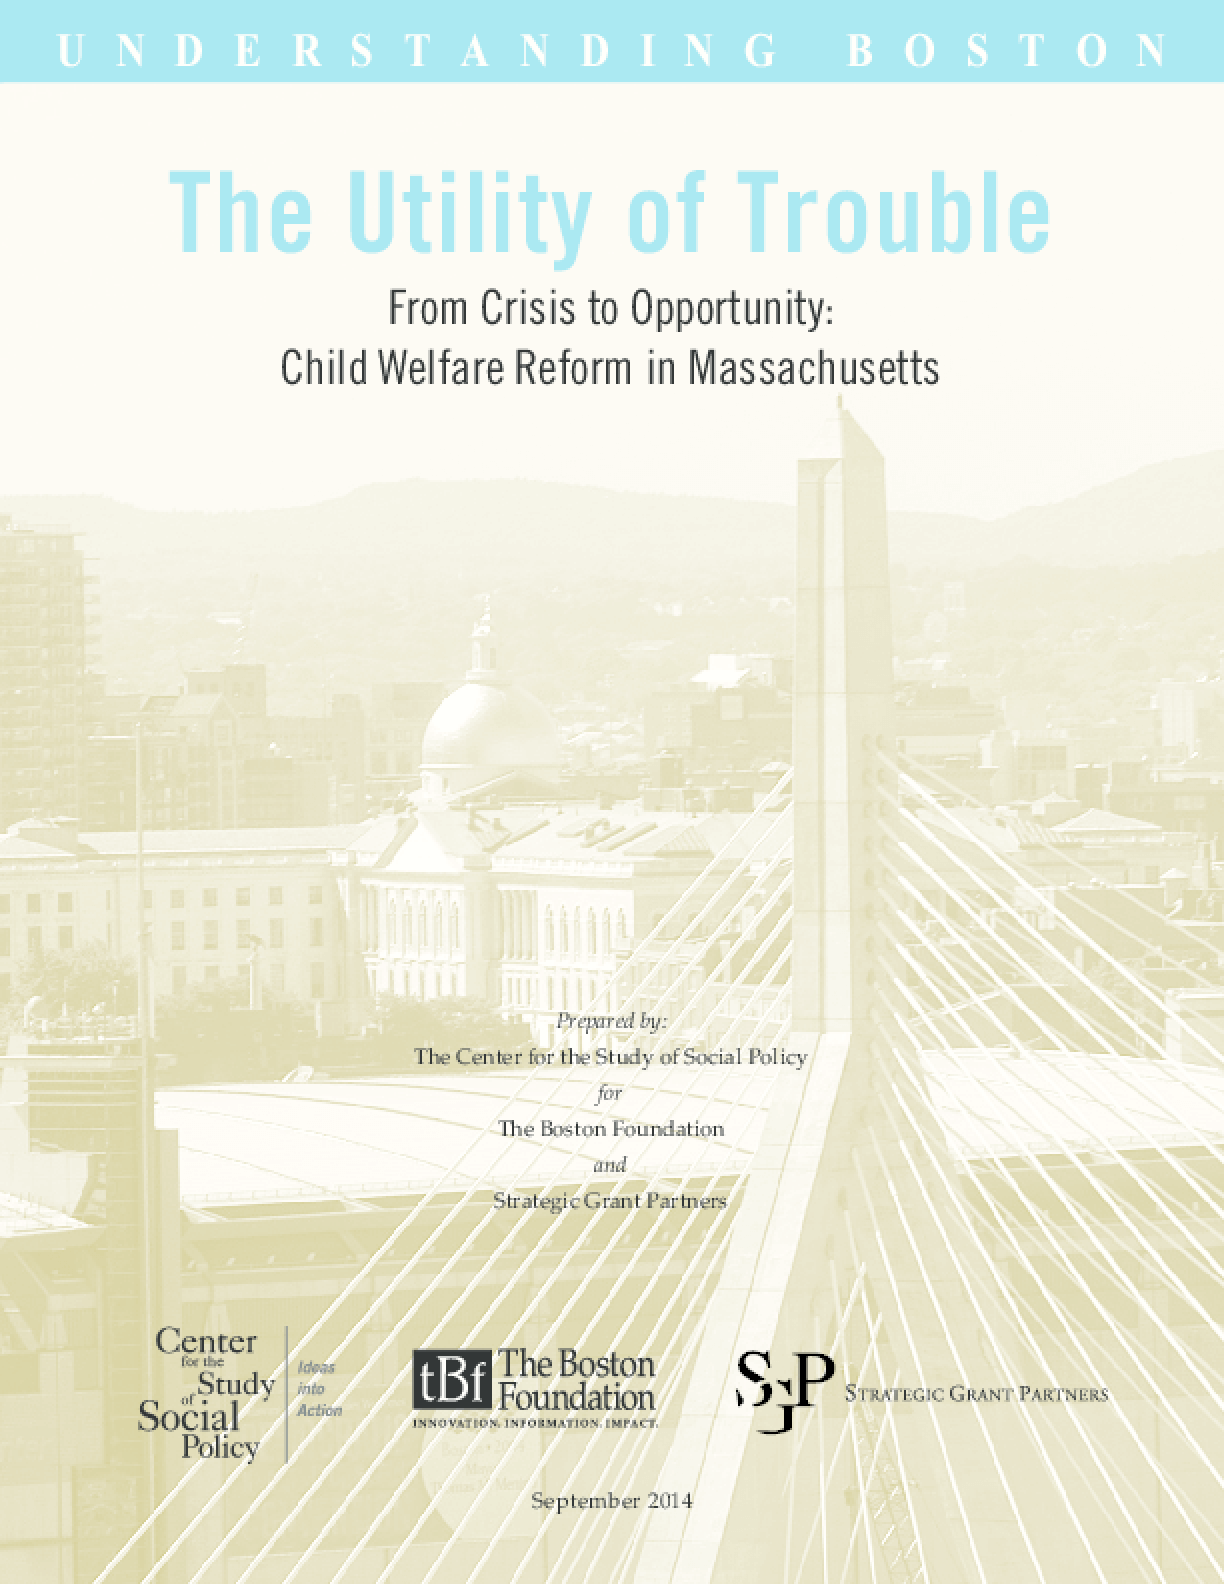 Understanding Boston: The Utility of Trouble - From Crisis to Opportunity: Child Welfare Reform in Massachusetts